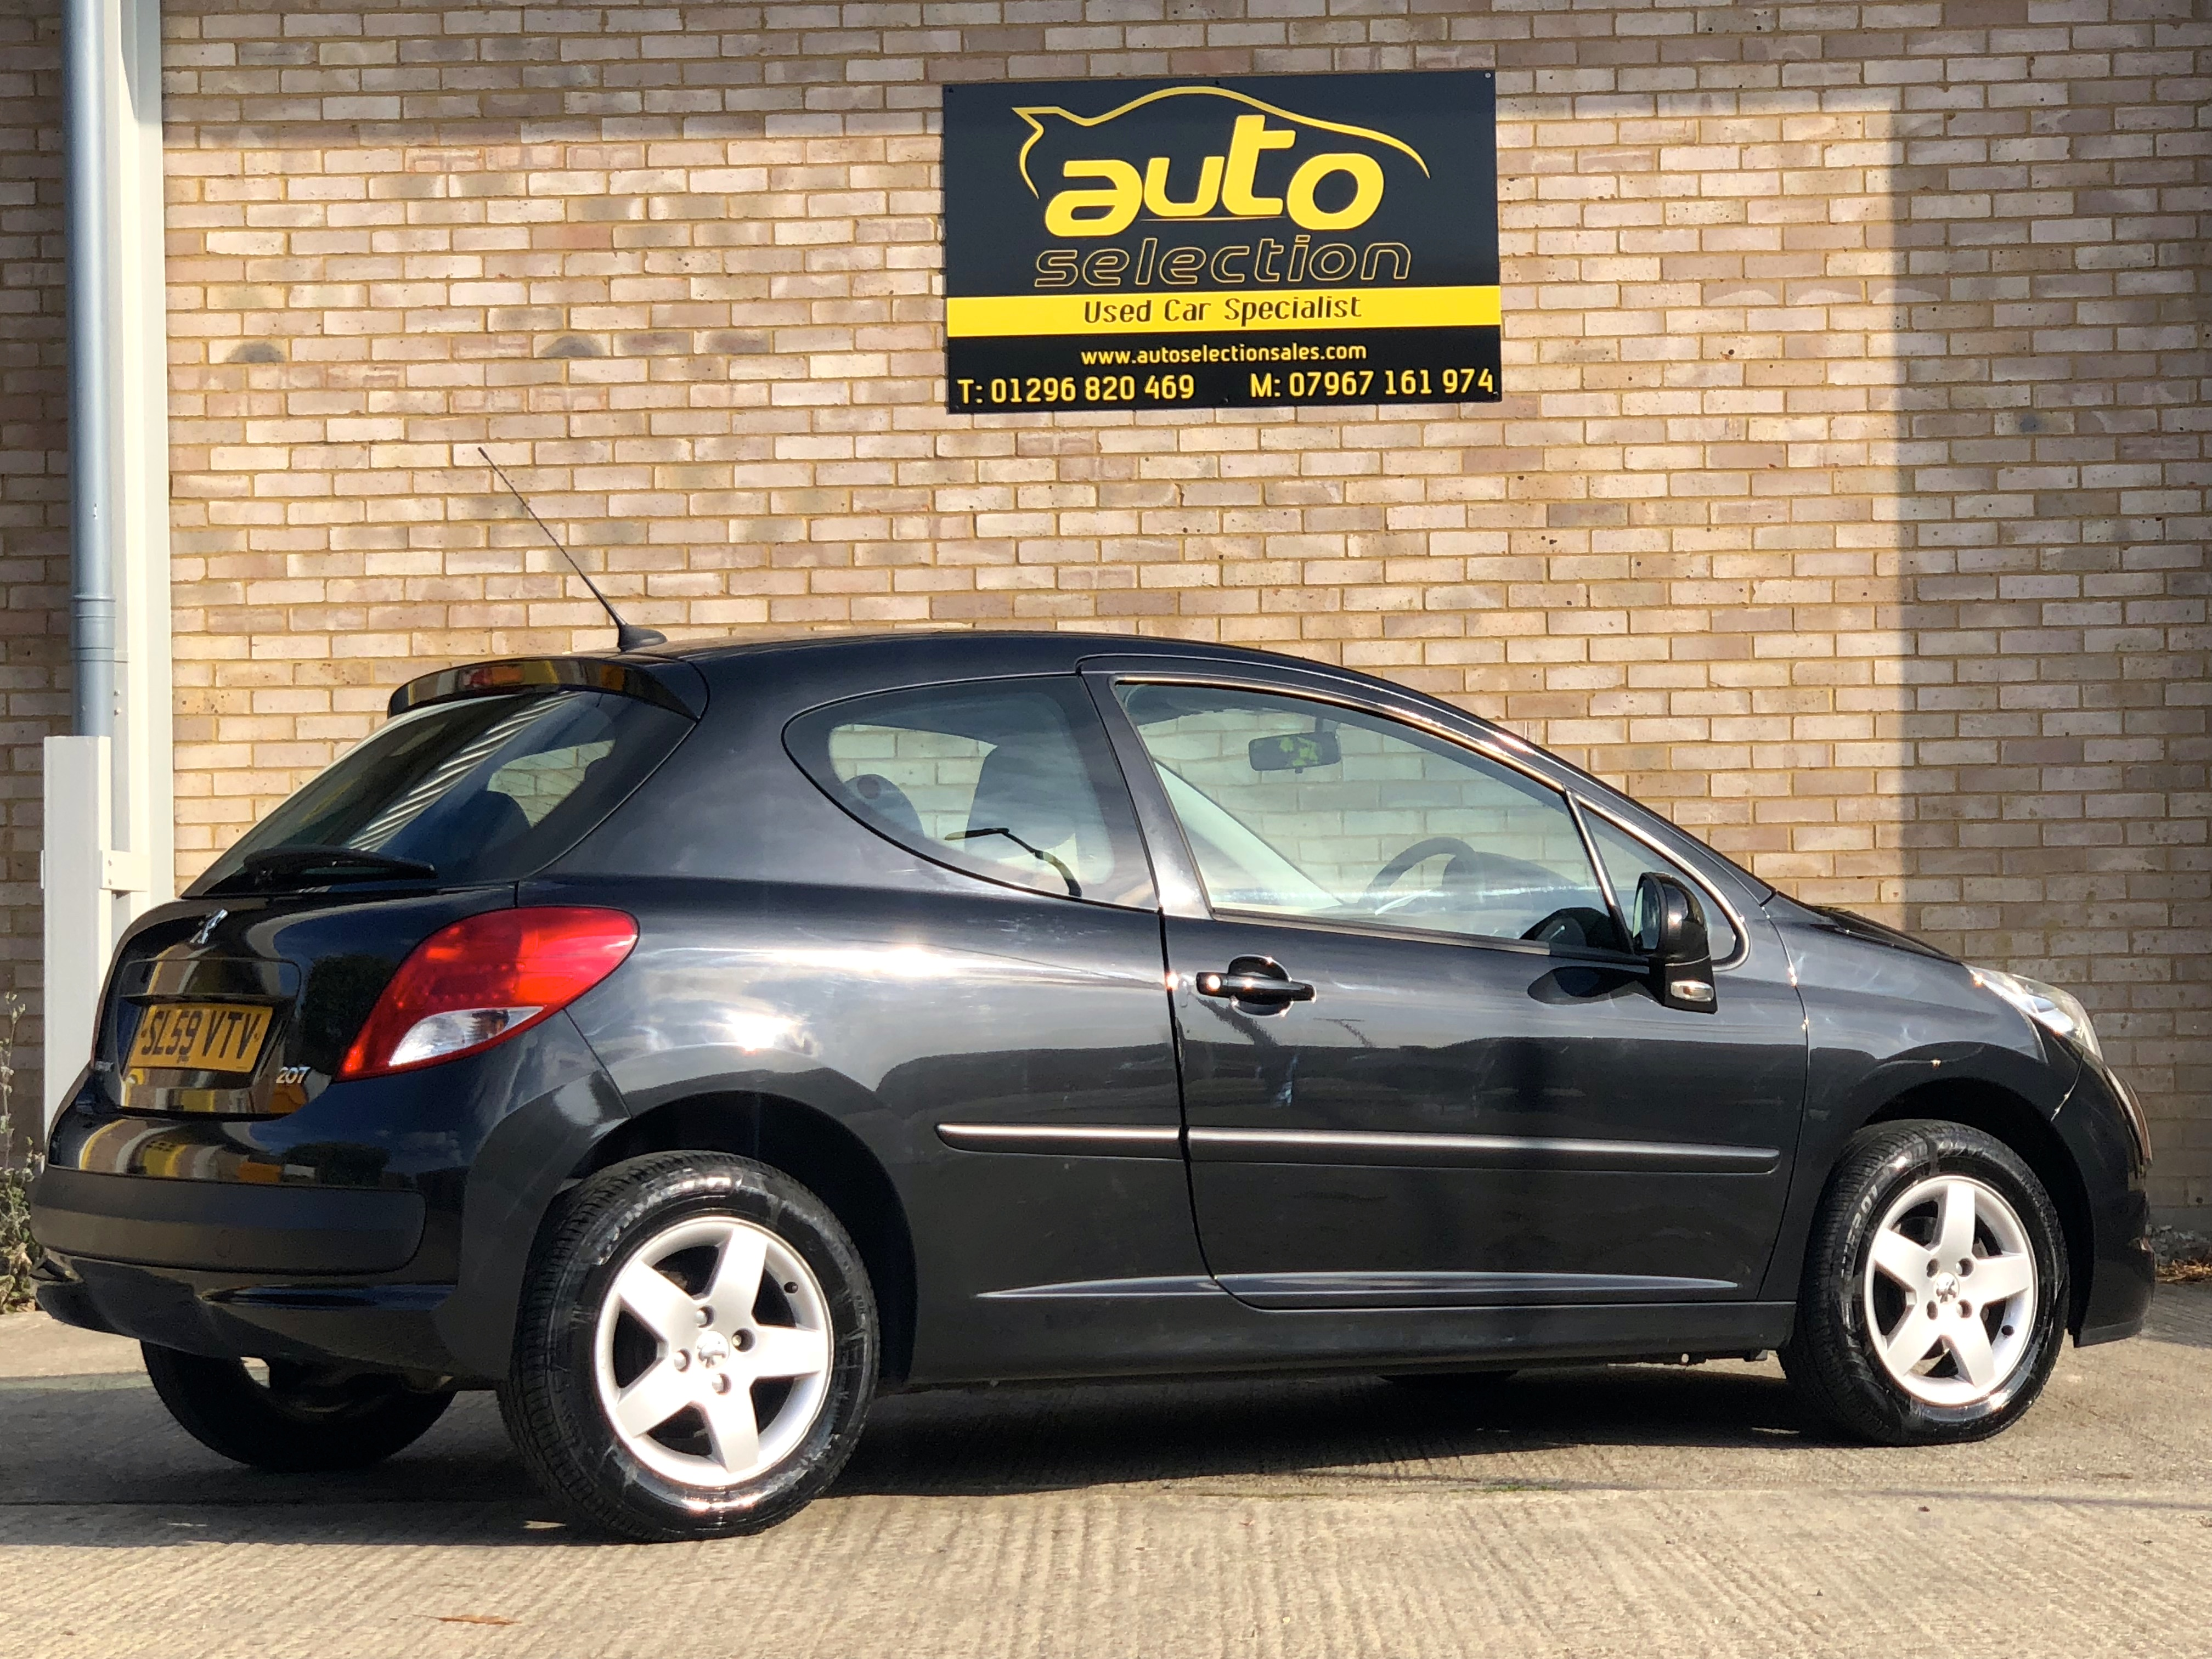 ... Excellent bodywork, Tyre condition Excellent, Bluetooth,  Air-Conditioning, 15in Monaco Alloy Wheels with Locking Wheel Nuts, Clarion Stereo  Radio/Mono ...